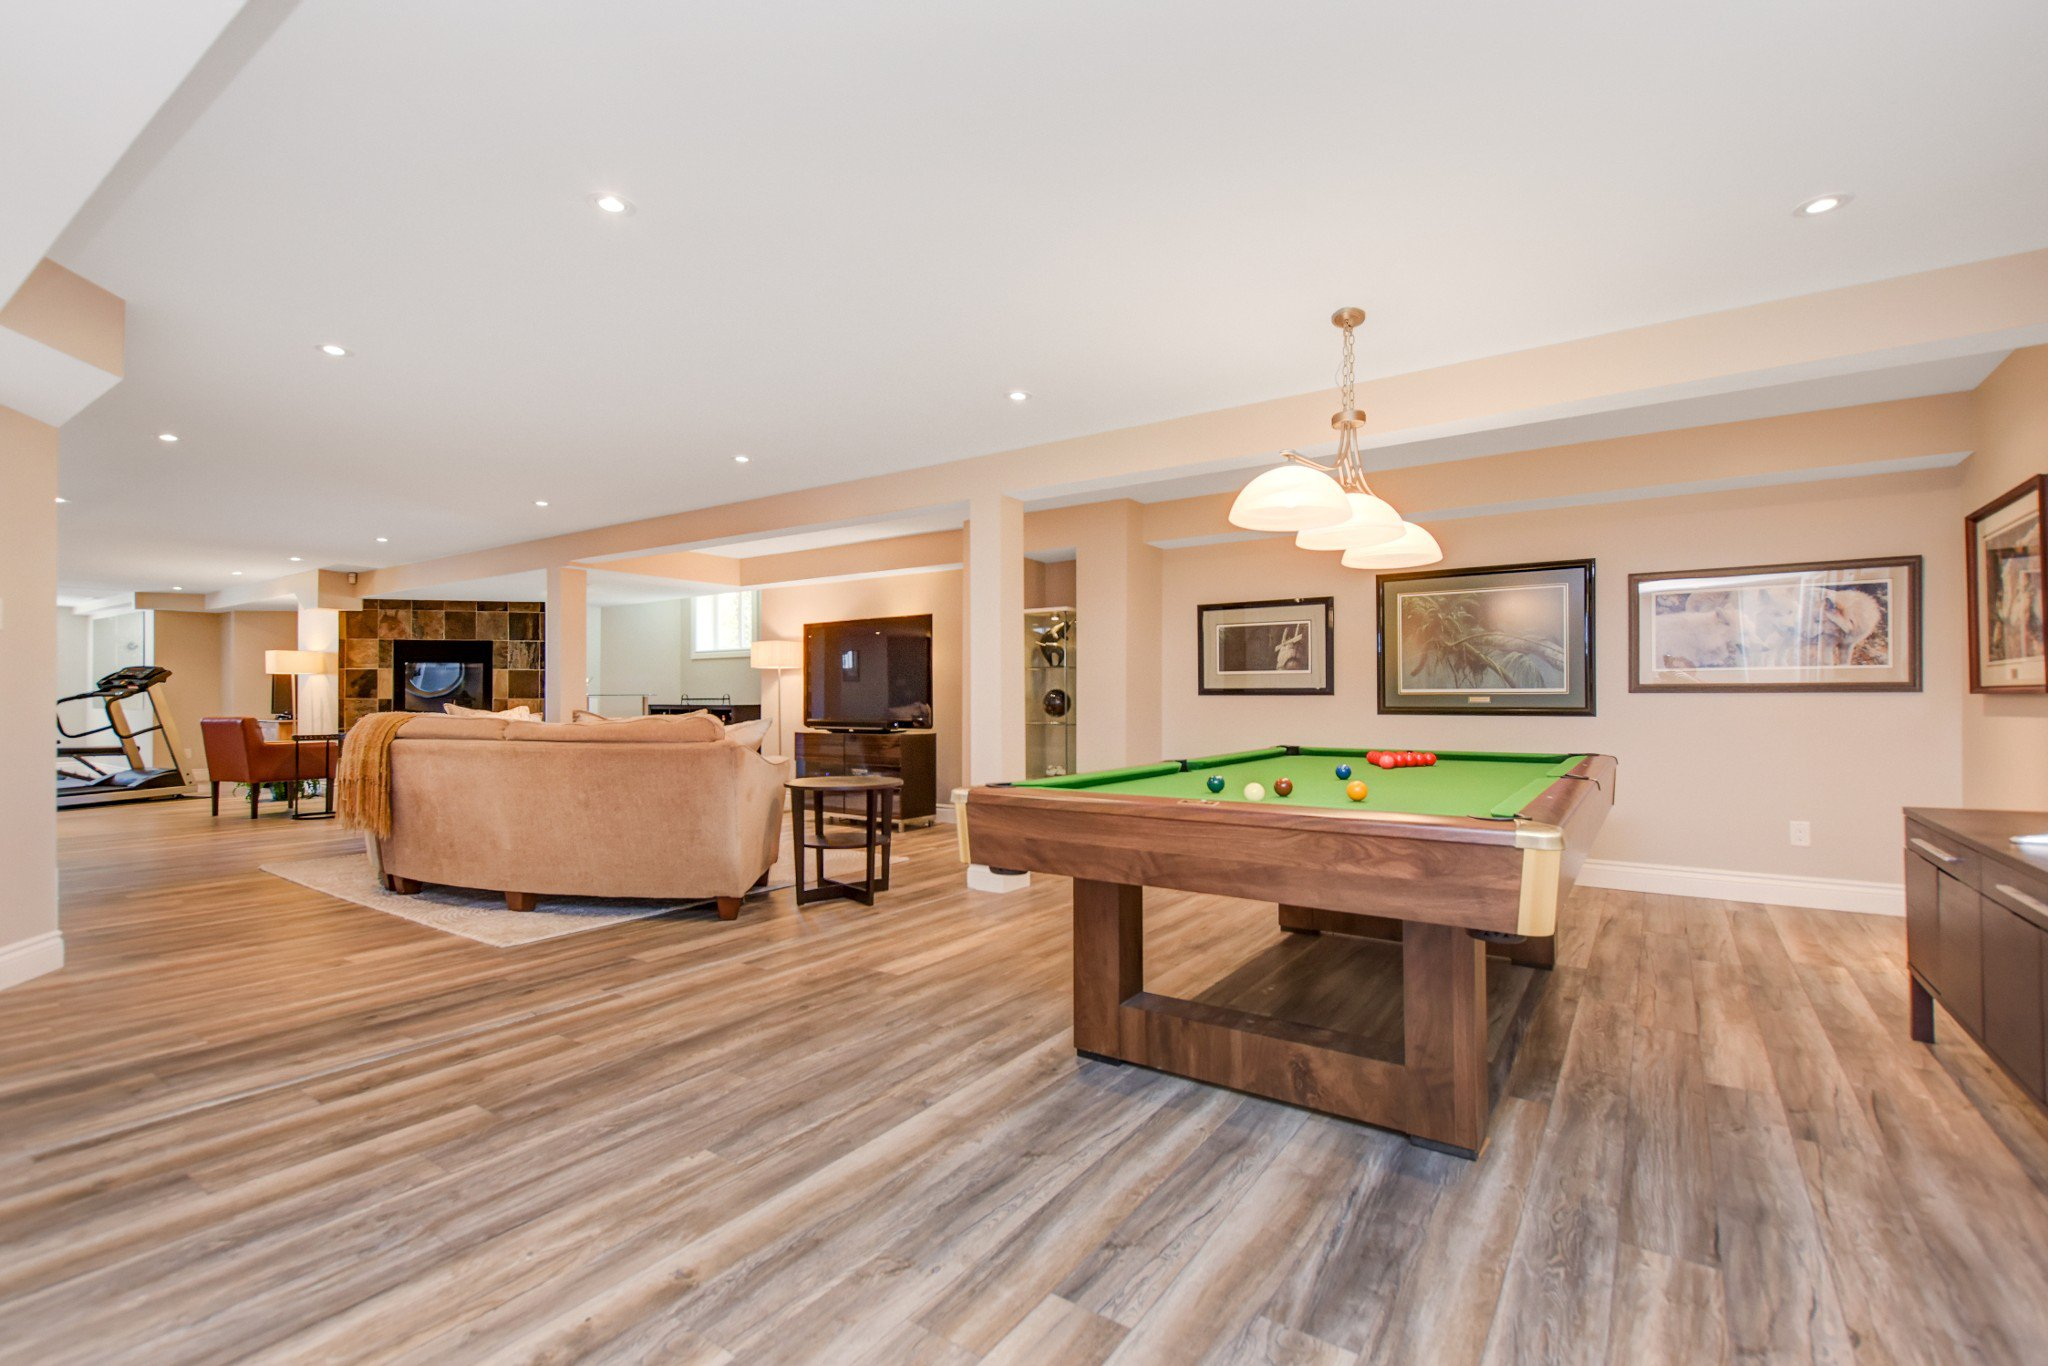 Photo 51: Photos: 1490 REINDEER WAY.: Greely House for sale (Ottawa)  : MLS®# 1109530